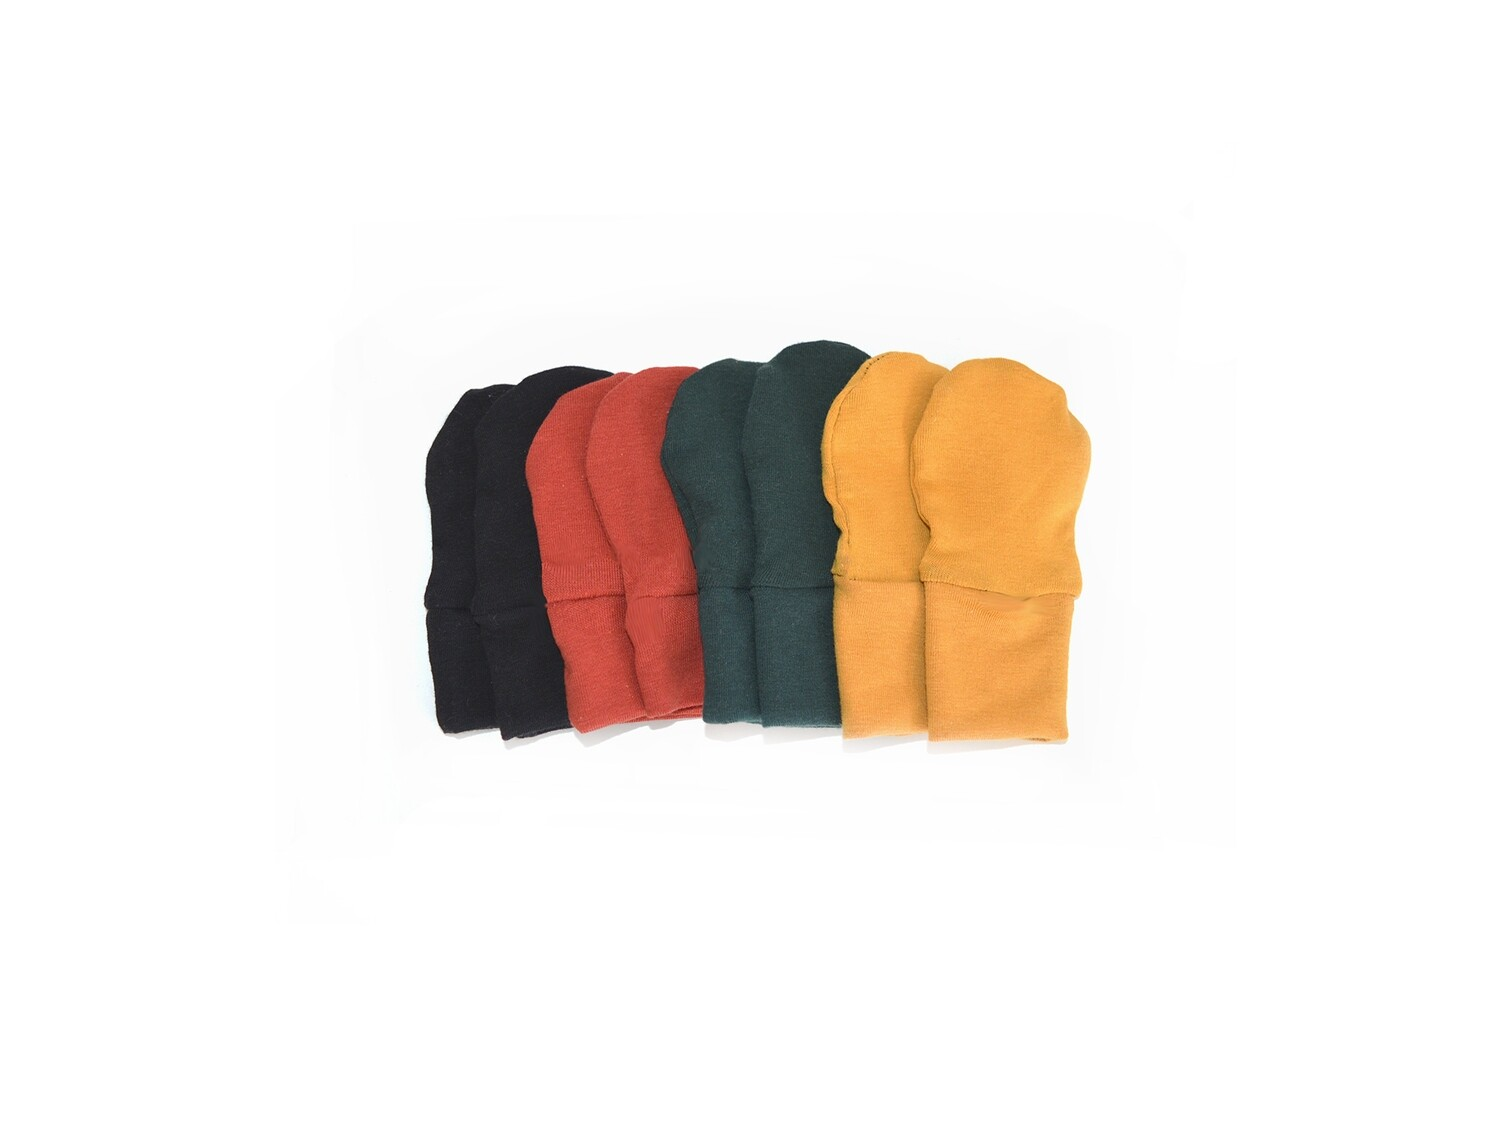 Full Set of Newborn Baby Scratch Prevention Mitts - 4 pair